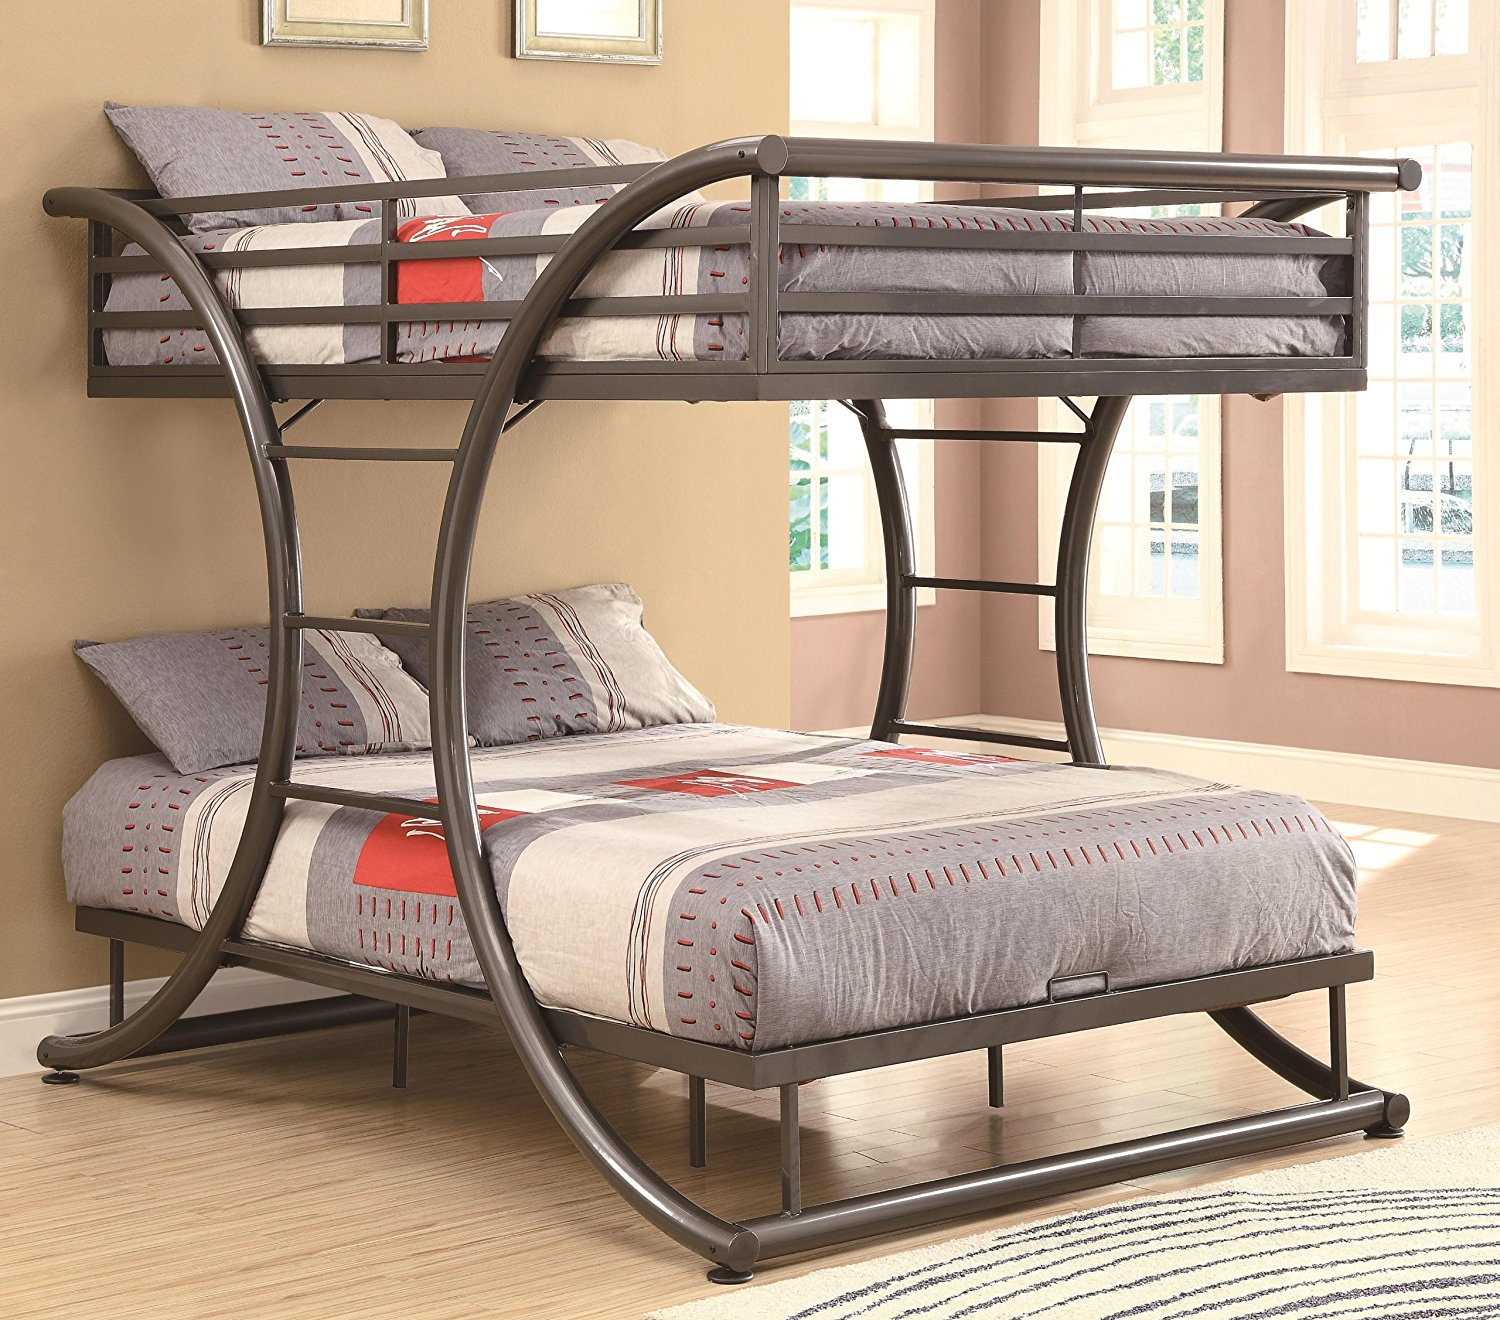 Best Bunk Beds Coaster Home Full over Full Gunmetal